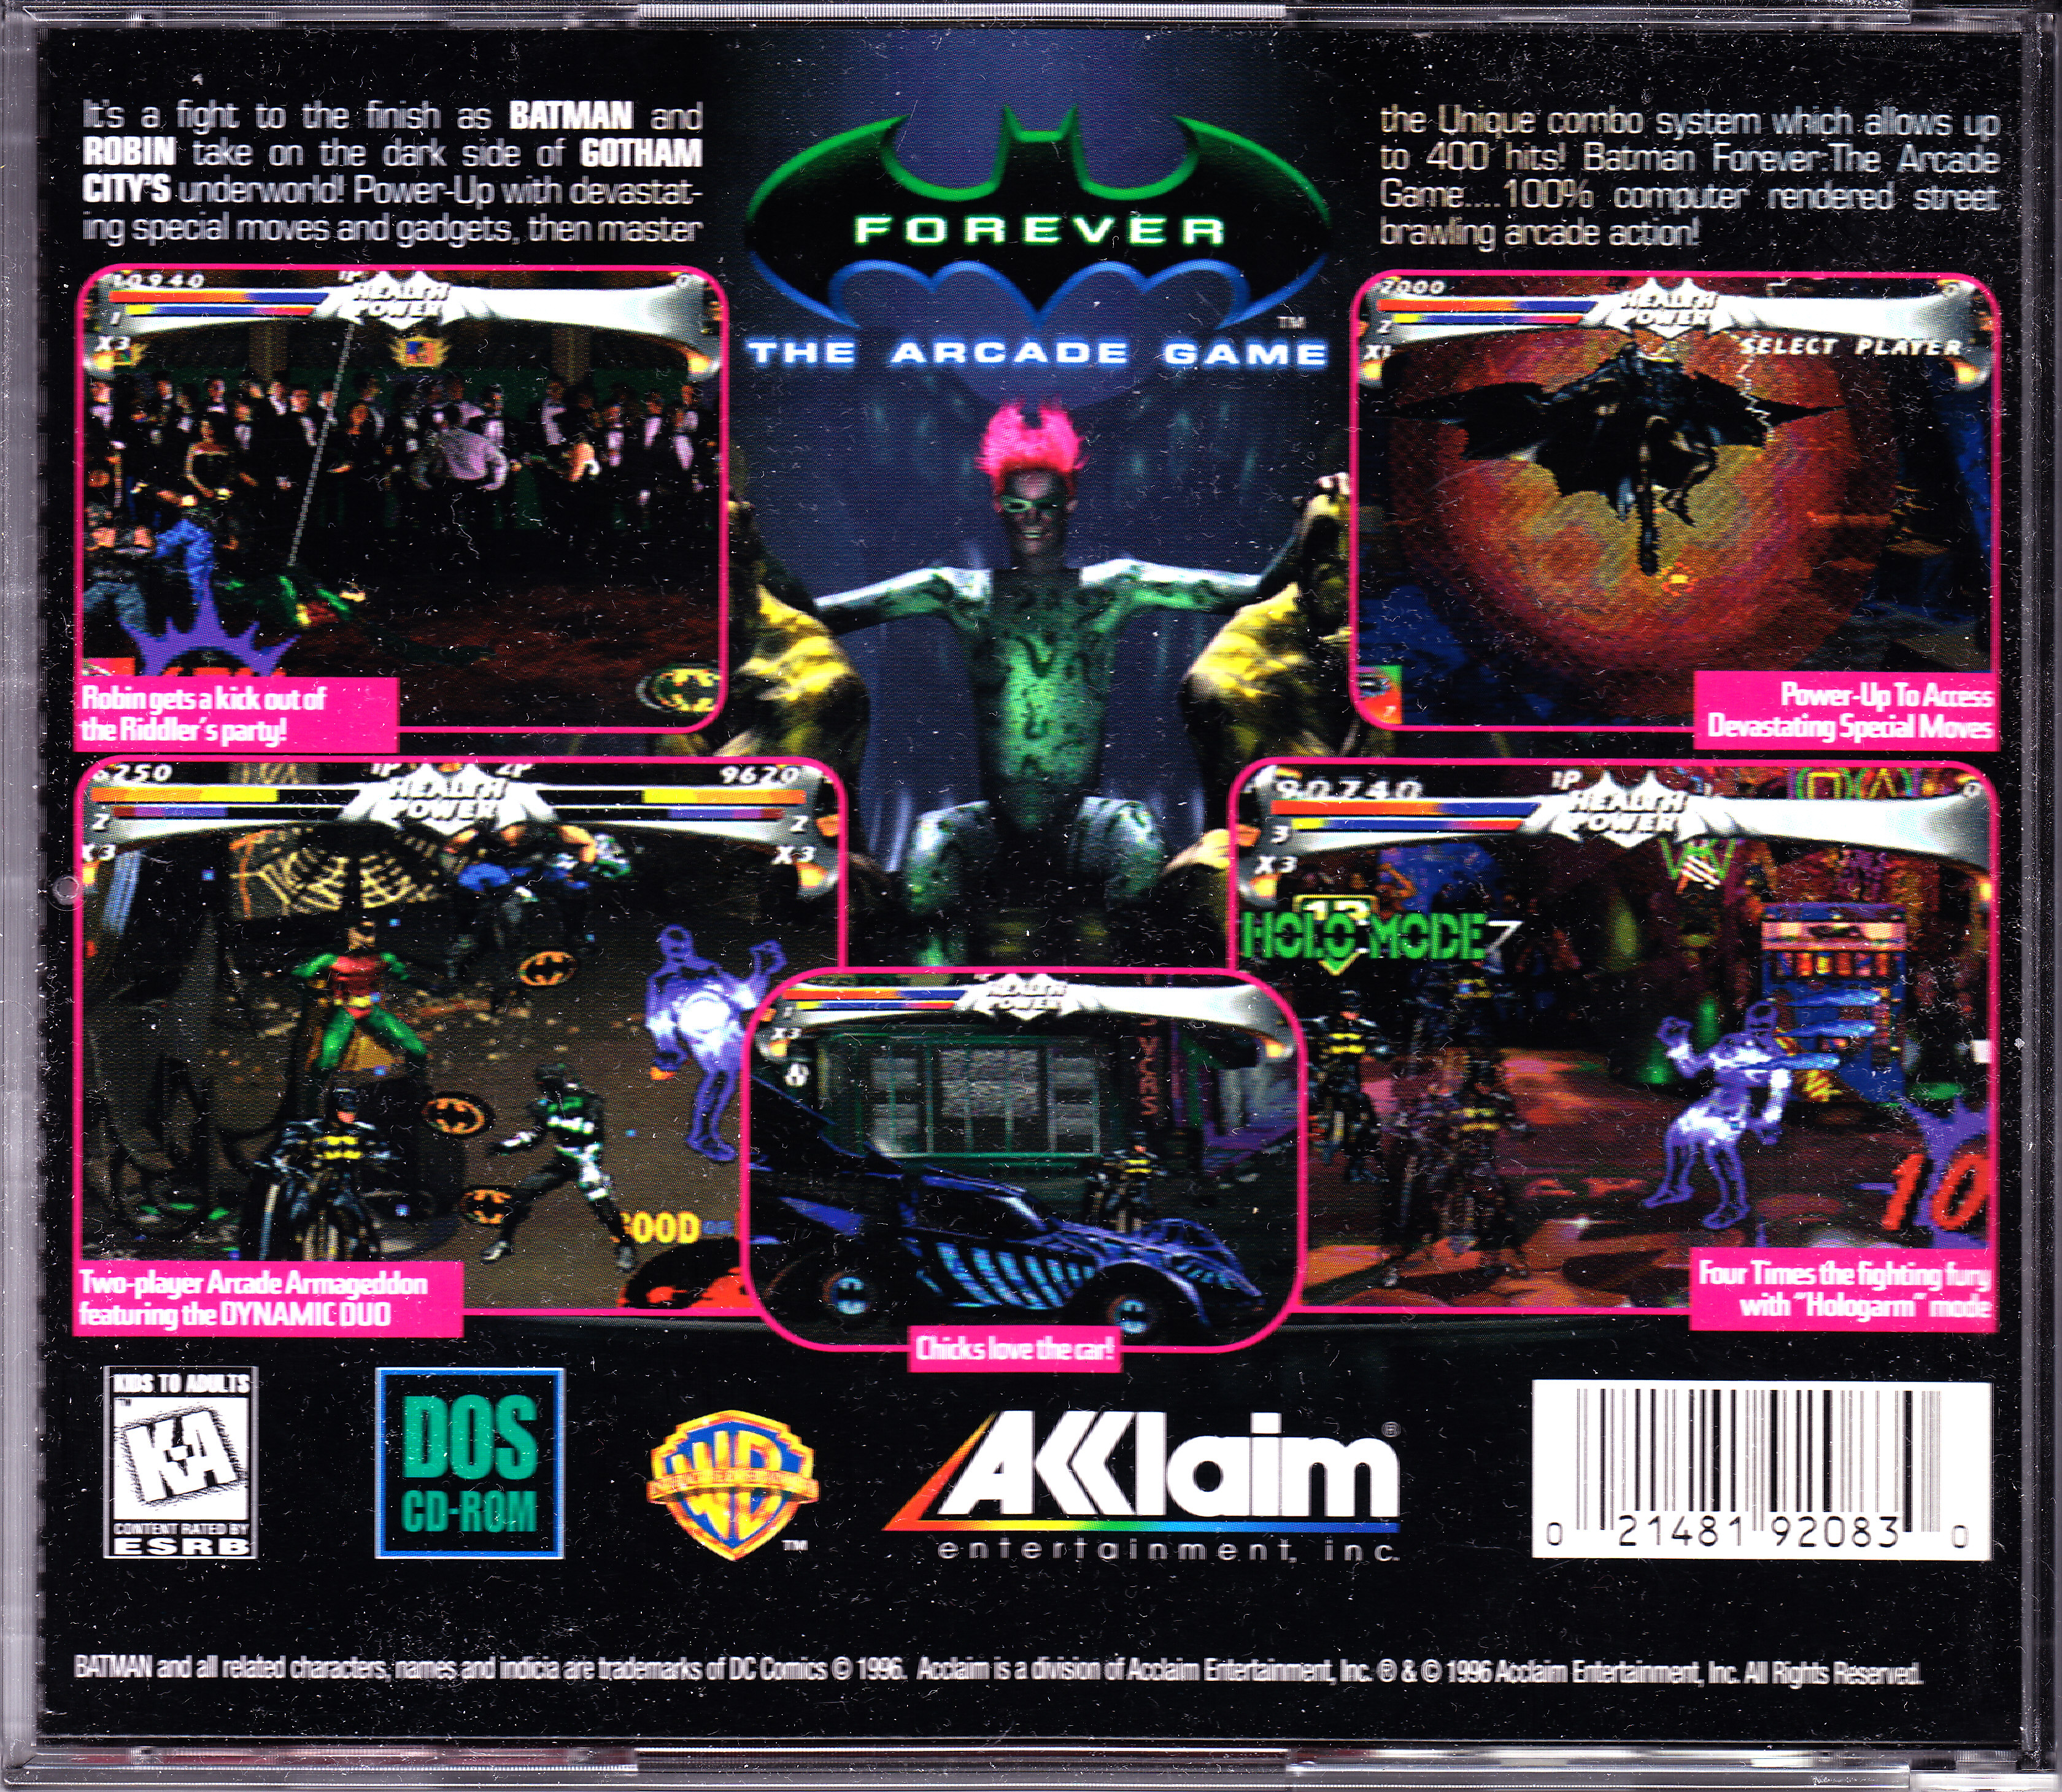 Batman forever: the arcade game (pc) download.